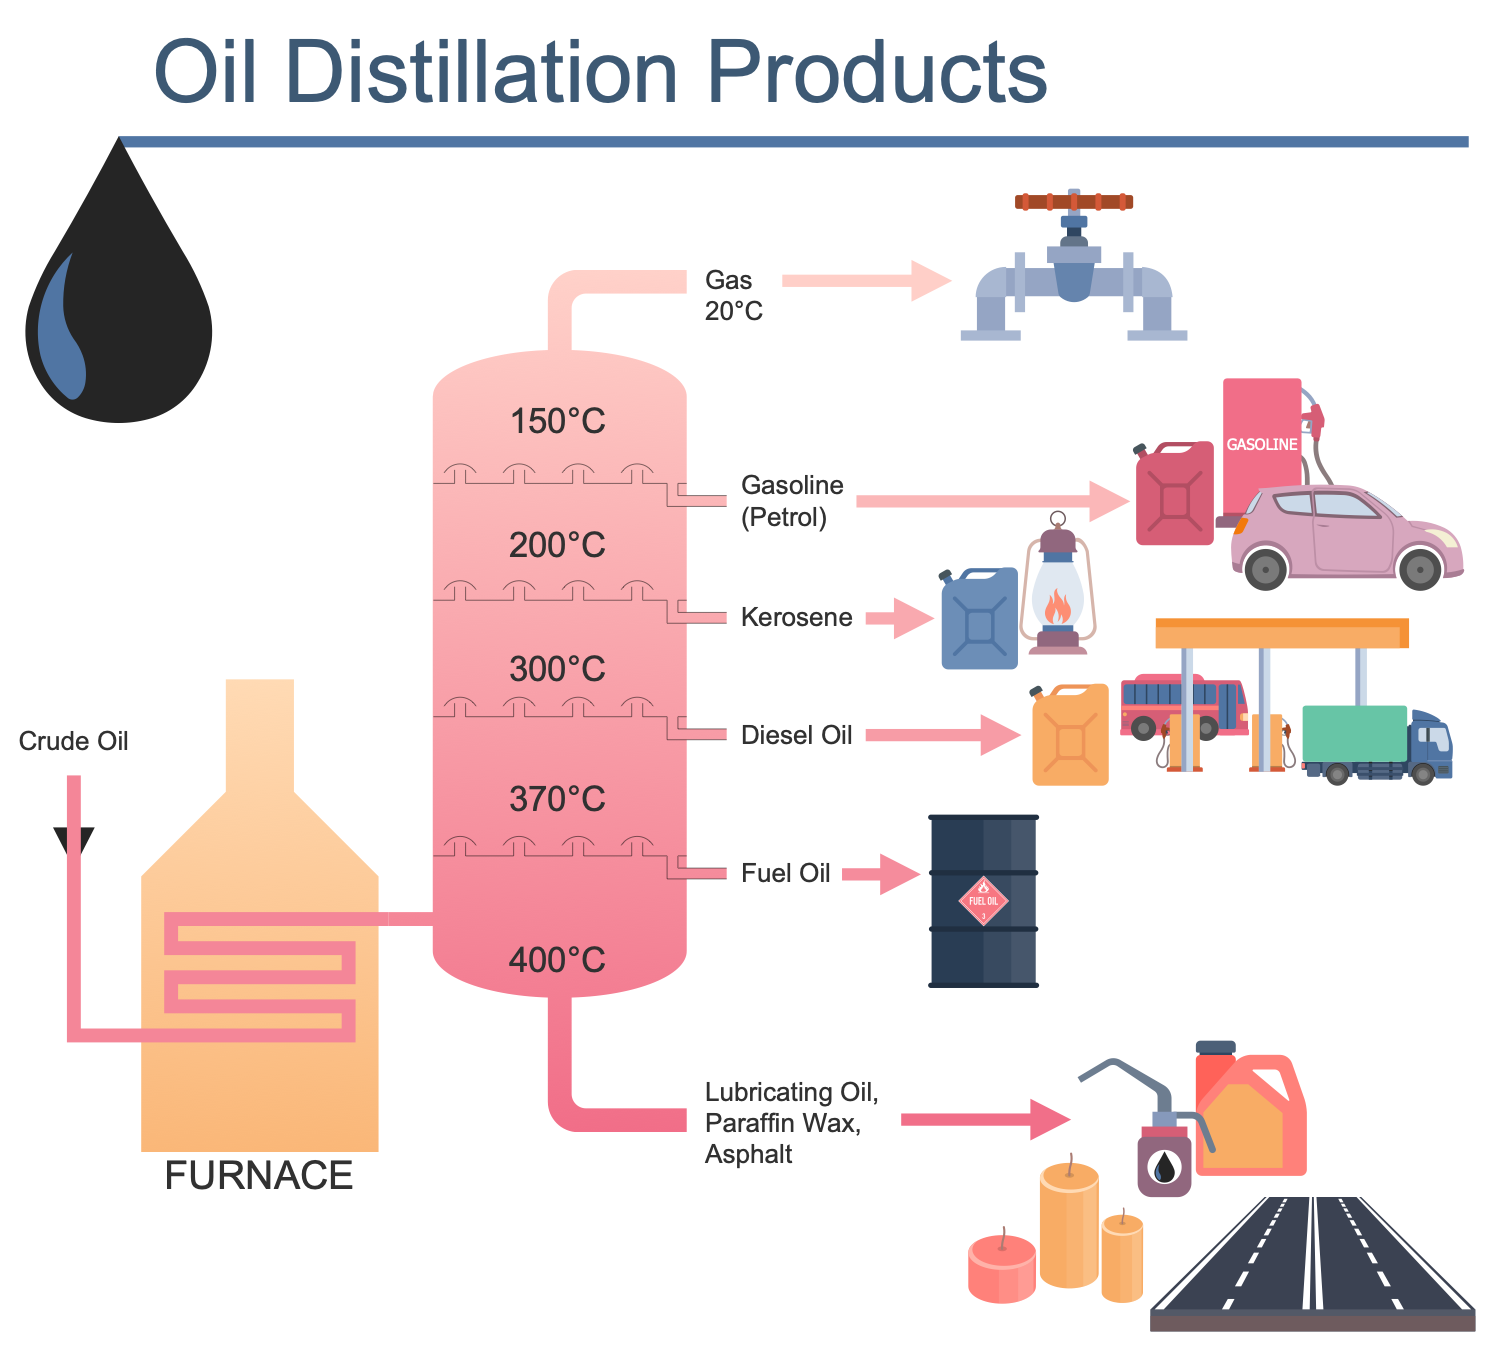 Oil Distillation Products